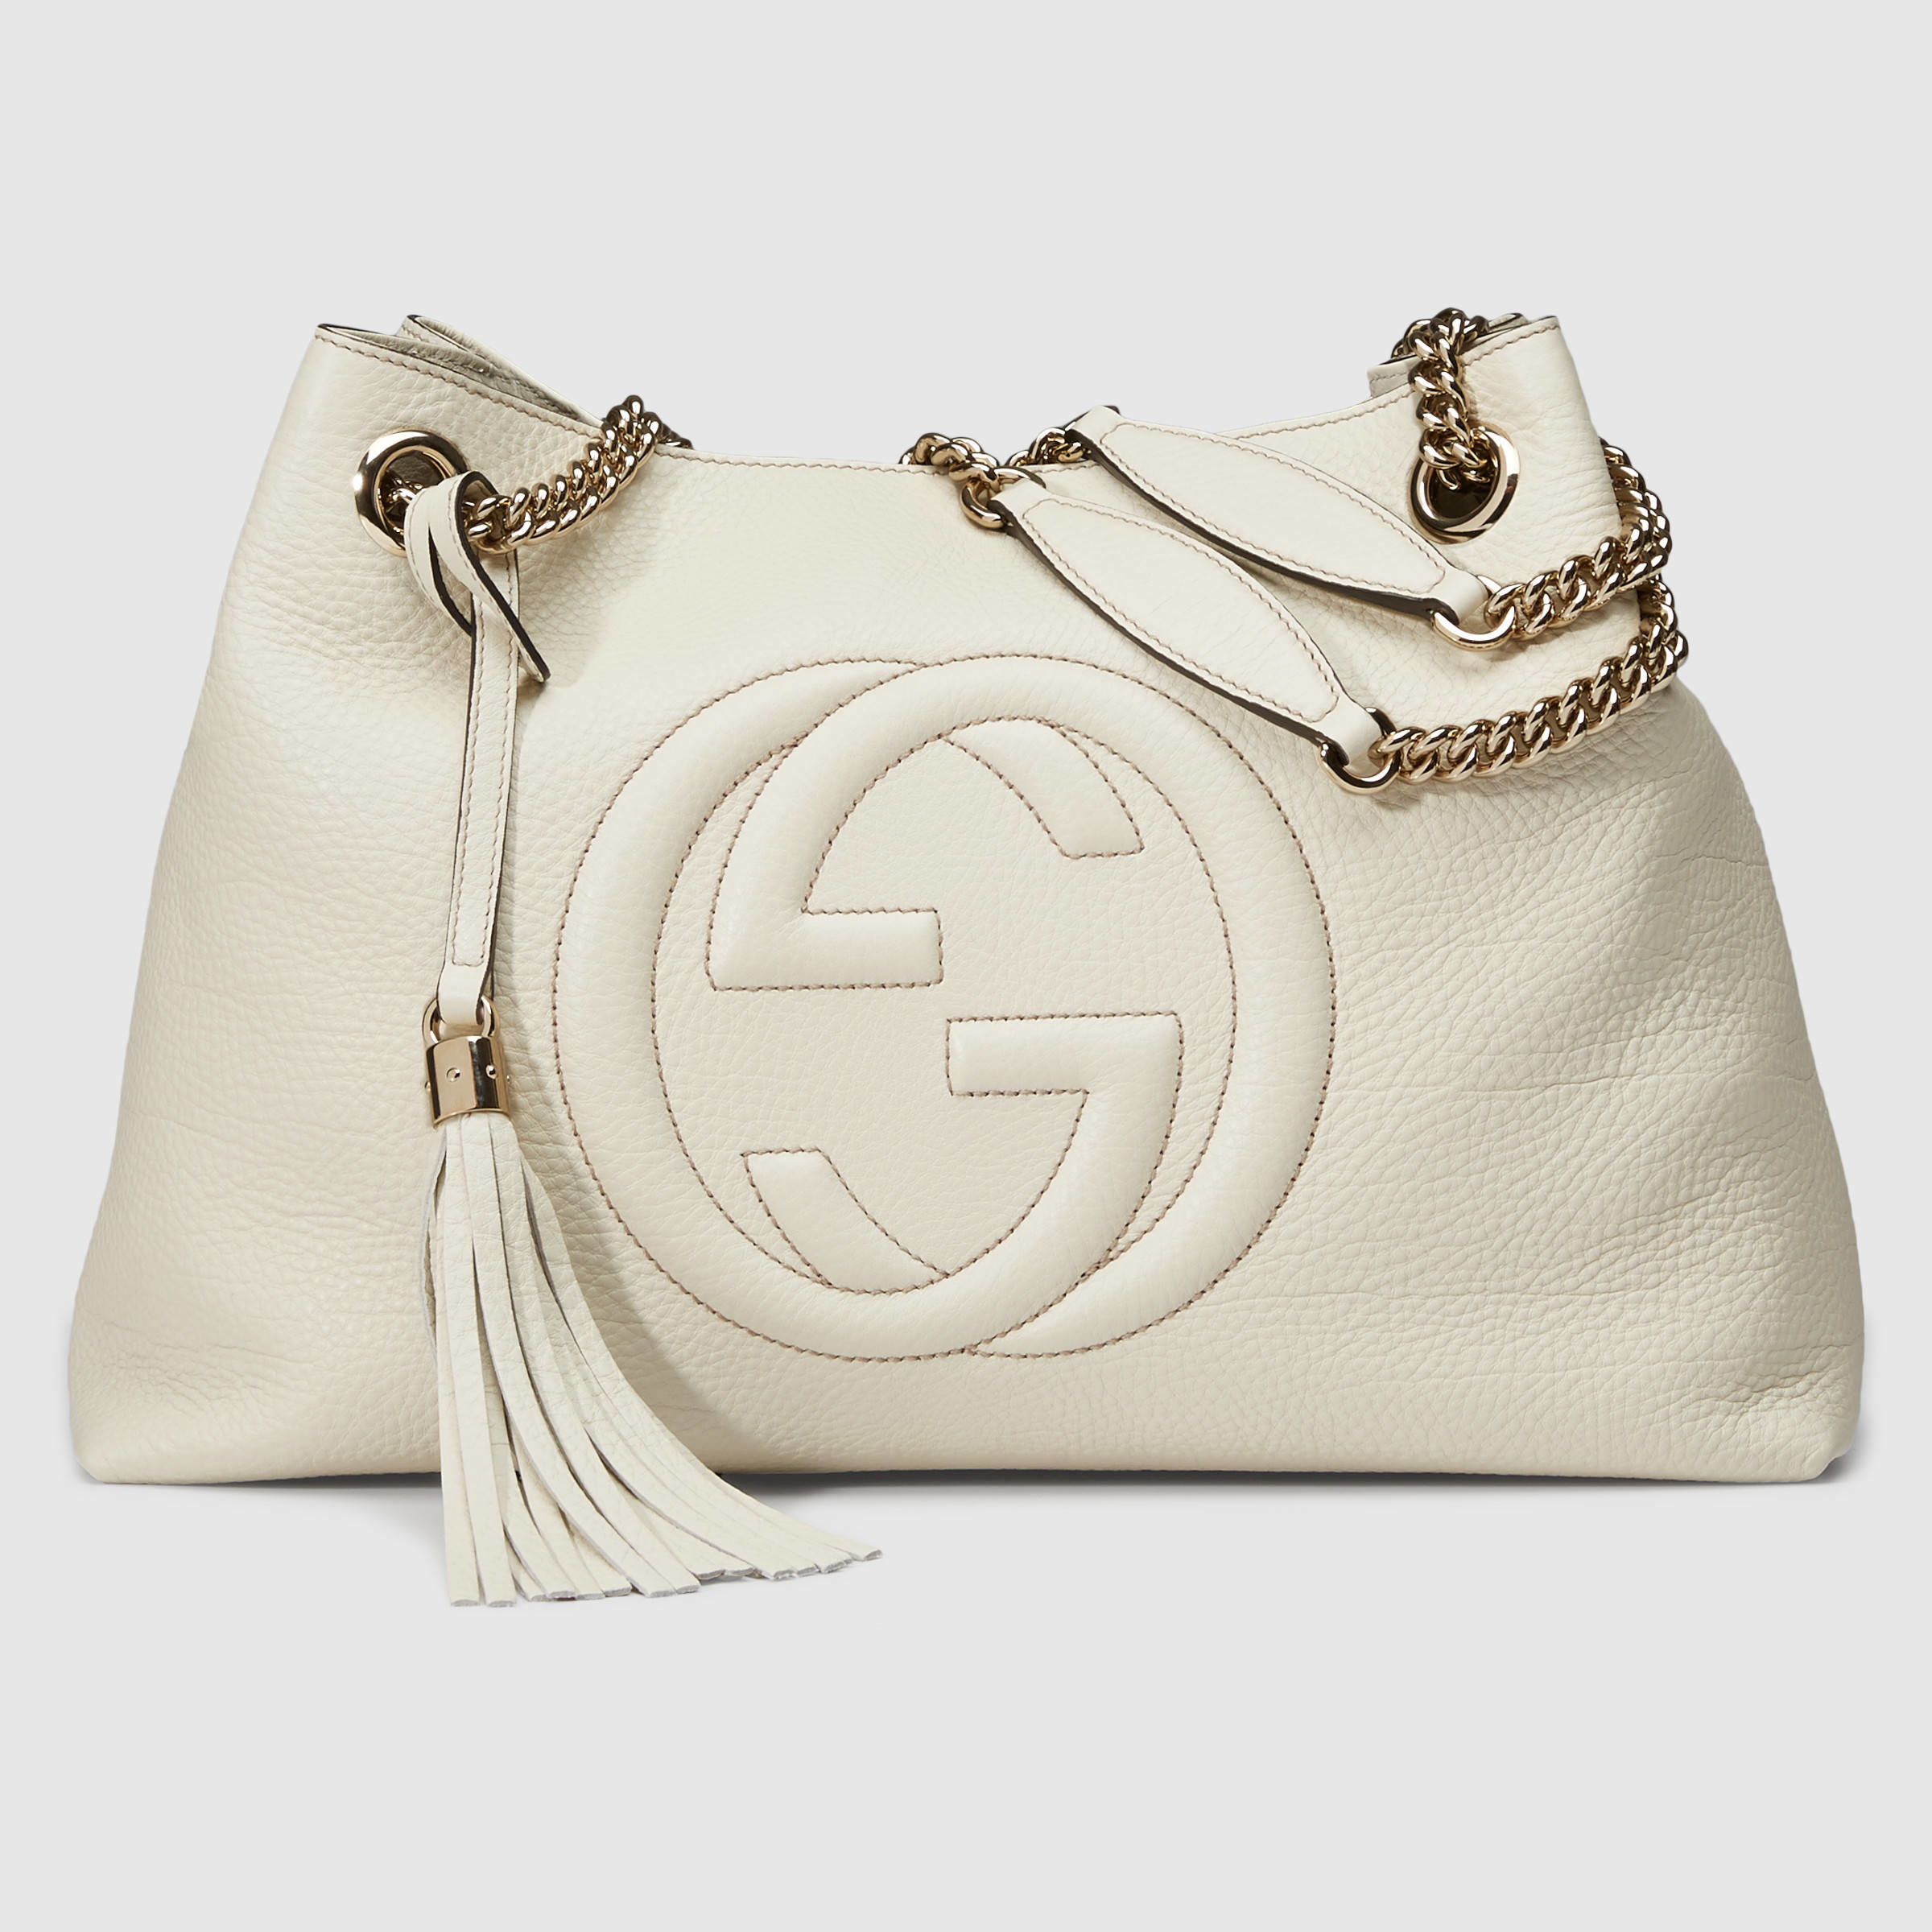 5479bdbfc1cb Gucci Soho Leather Shoulder Bag in White - Lyst